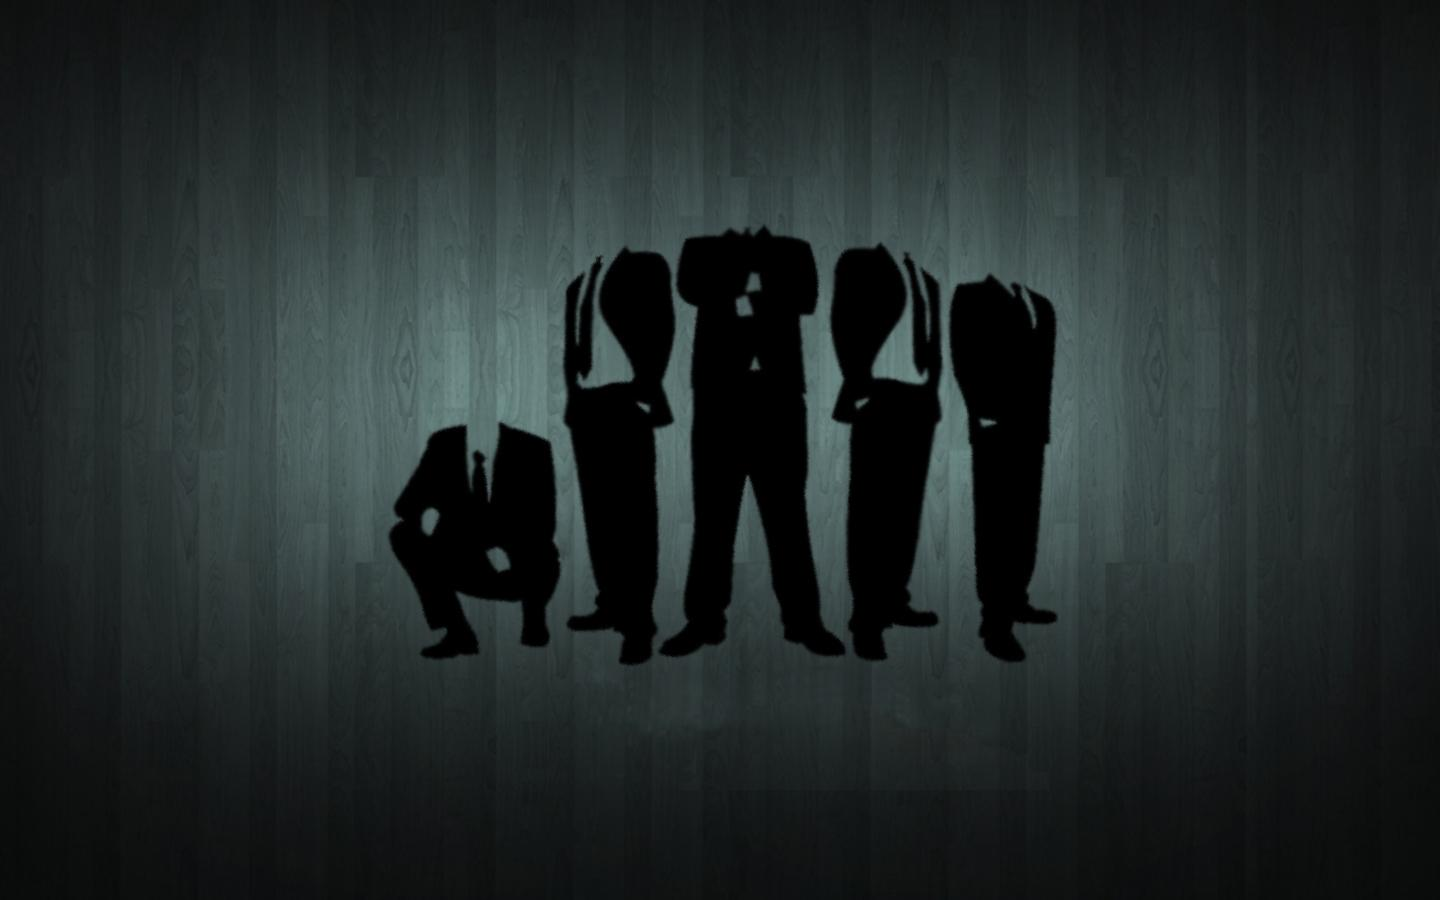 Anonymous wallpaper wallpapers